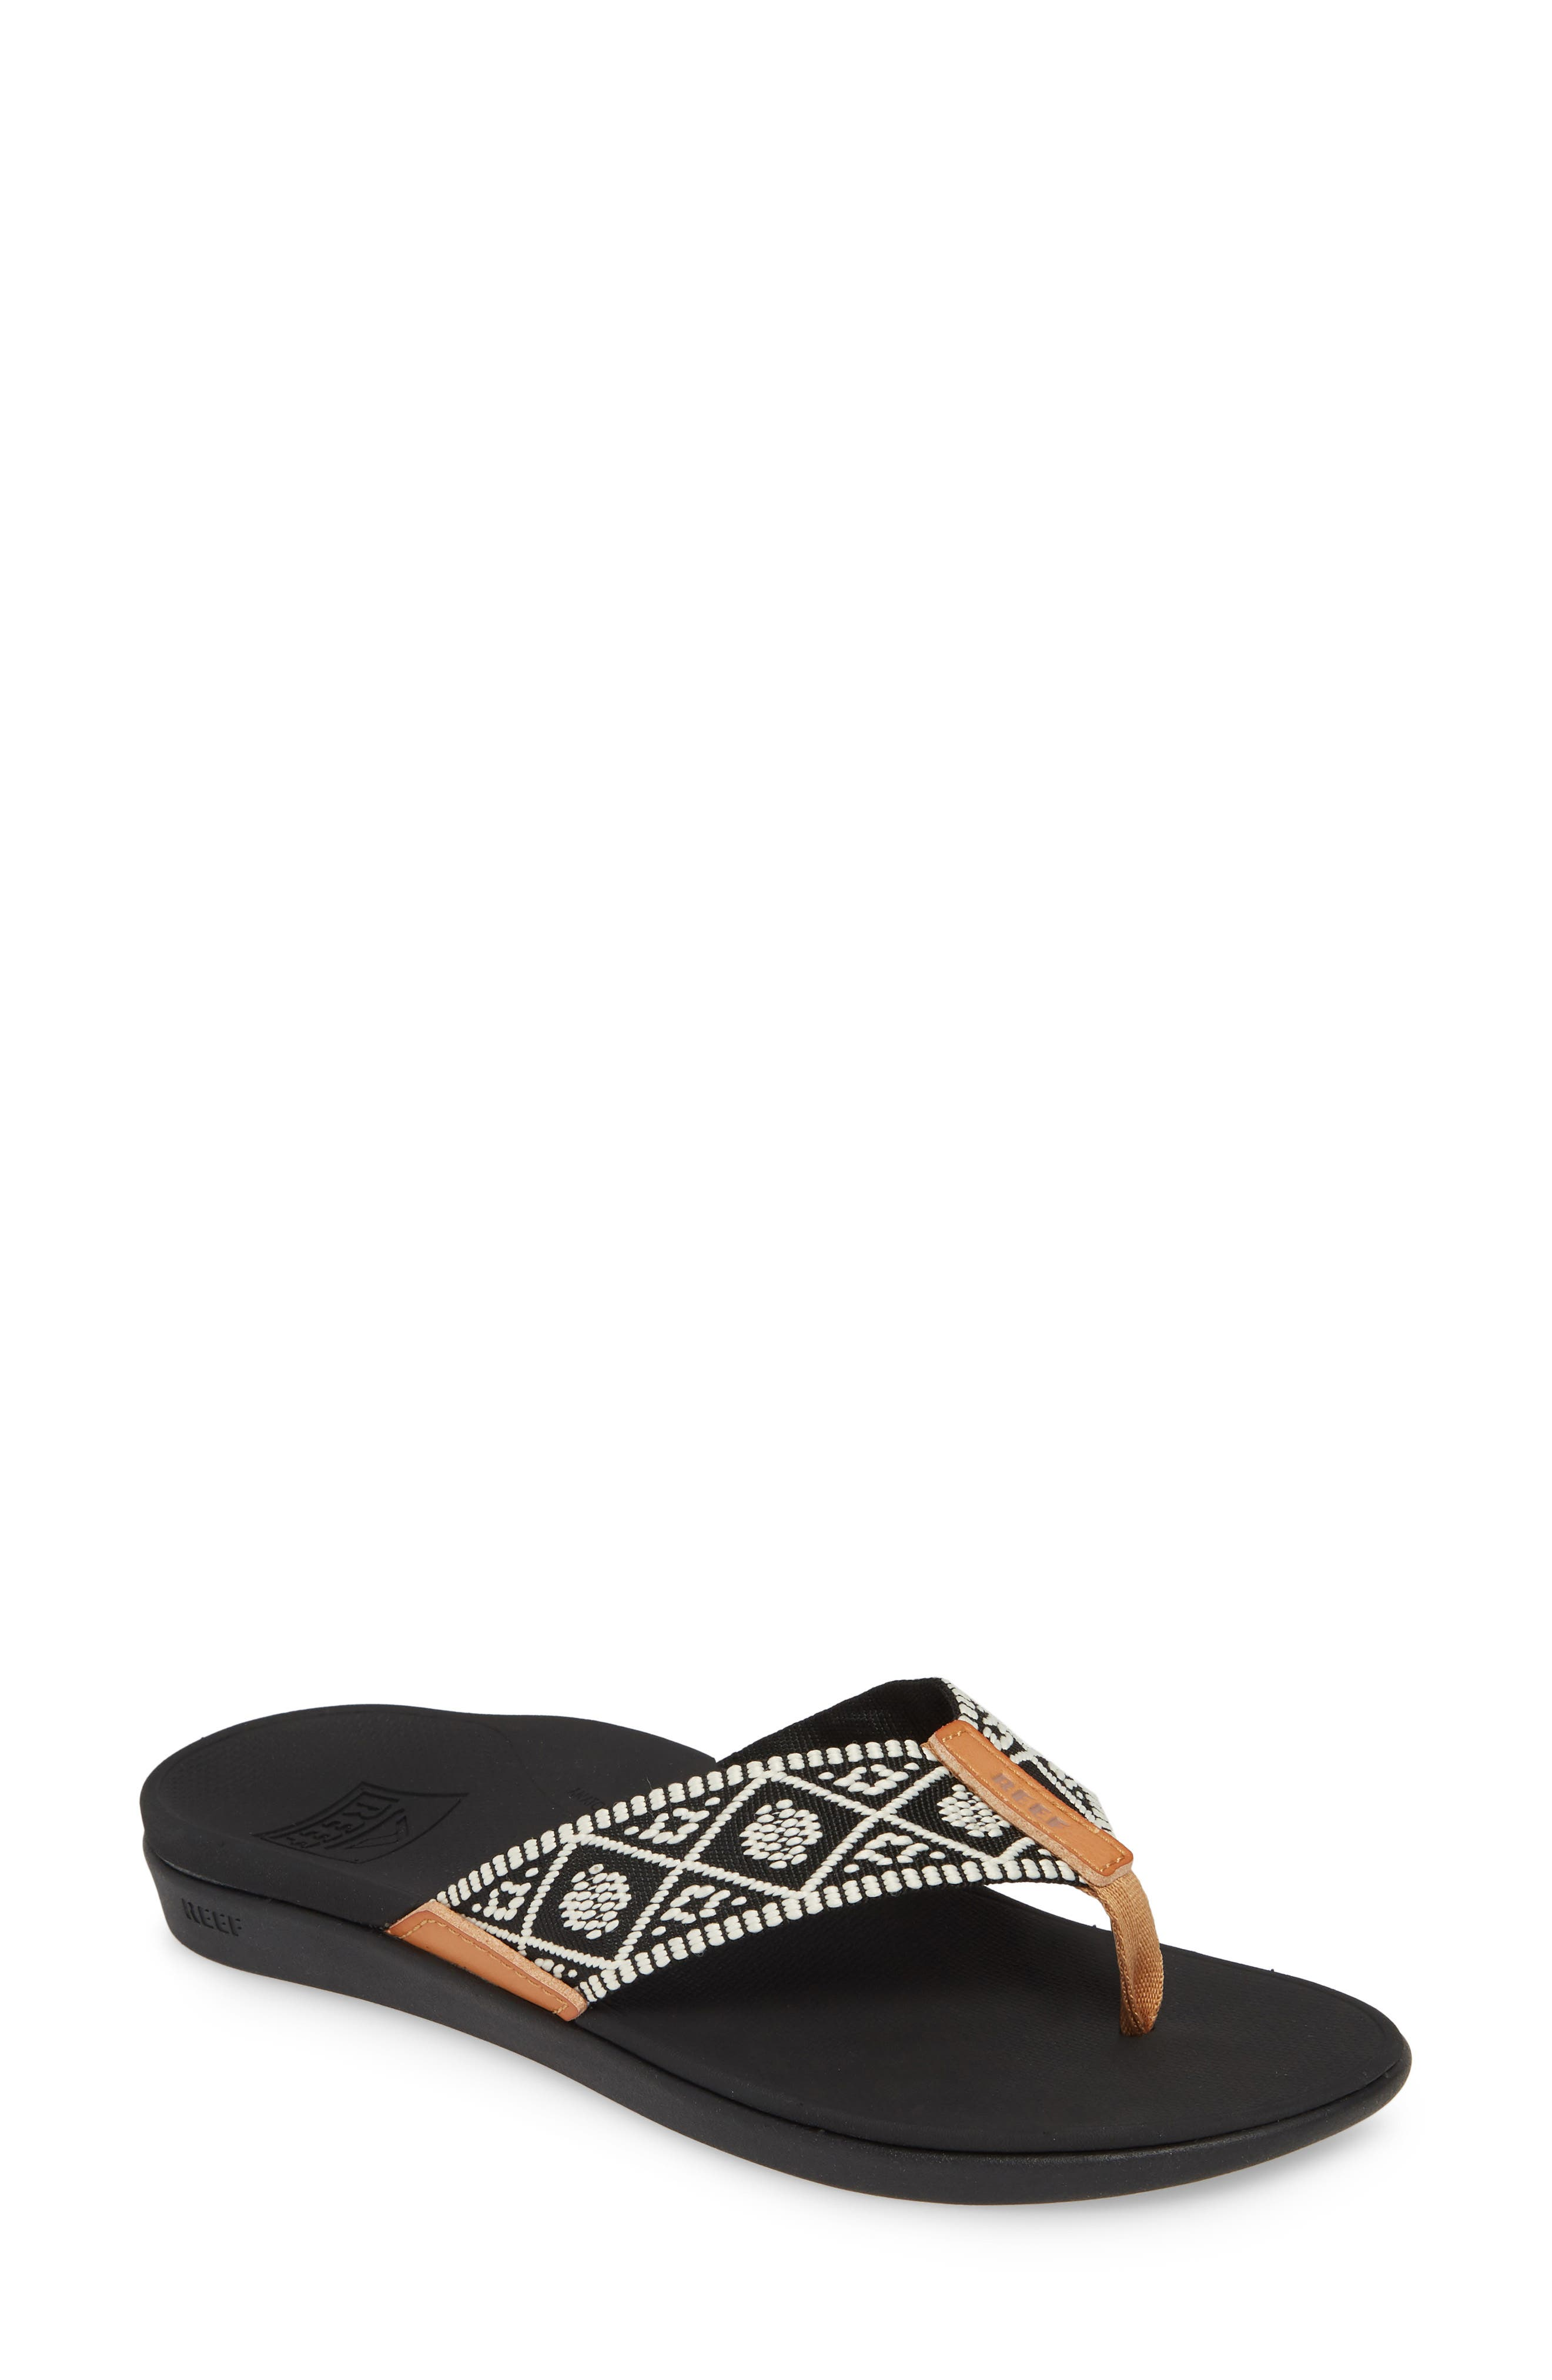 REEF Ortho-Bounce Woven Flip Flop, Main, color, BLACK/ WHITE